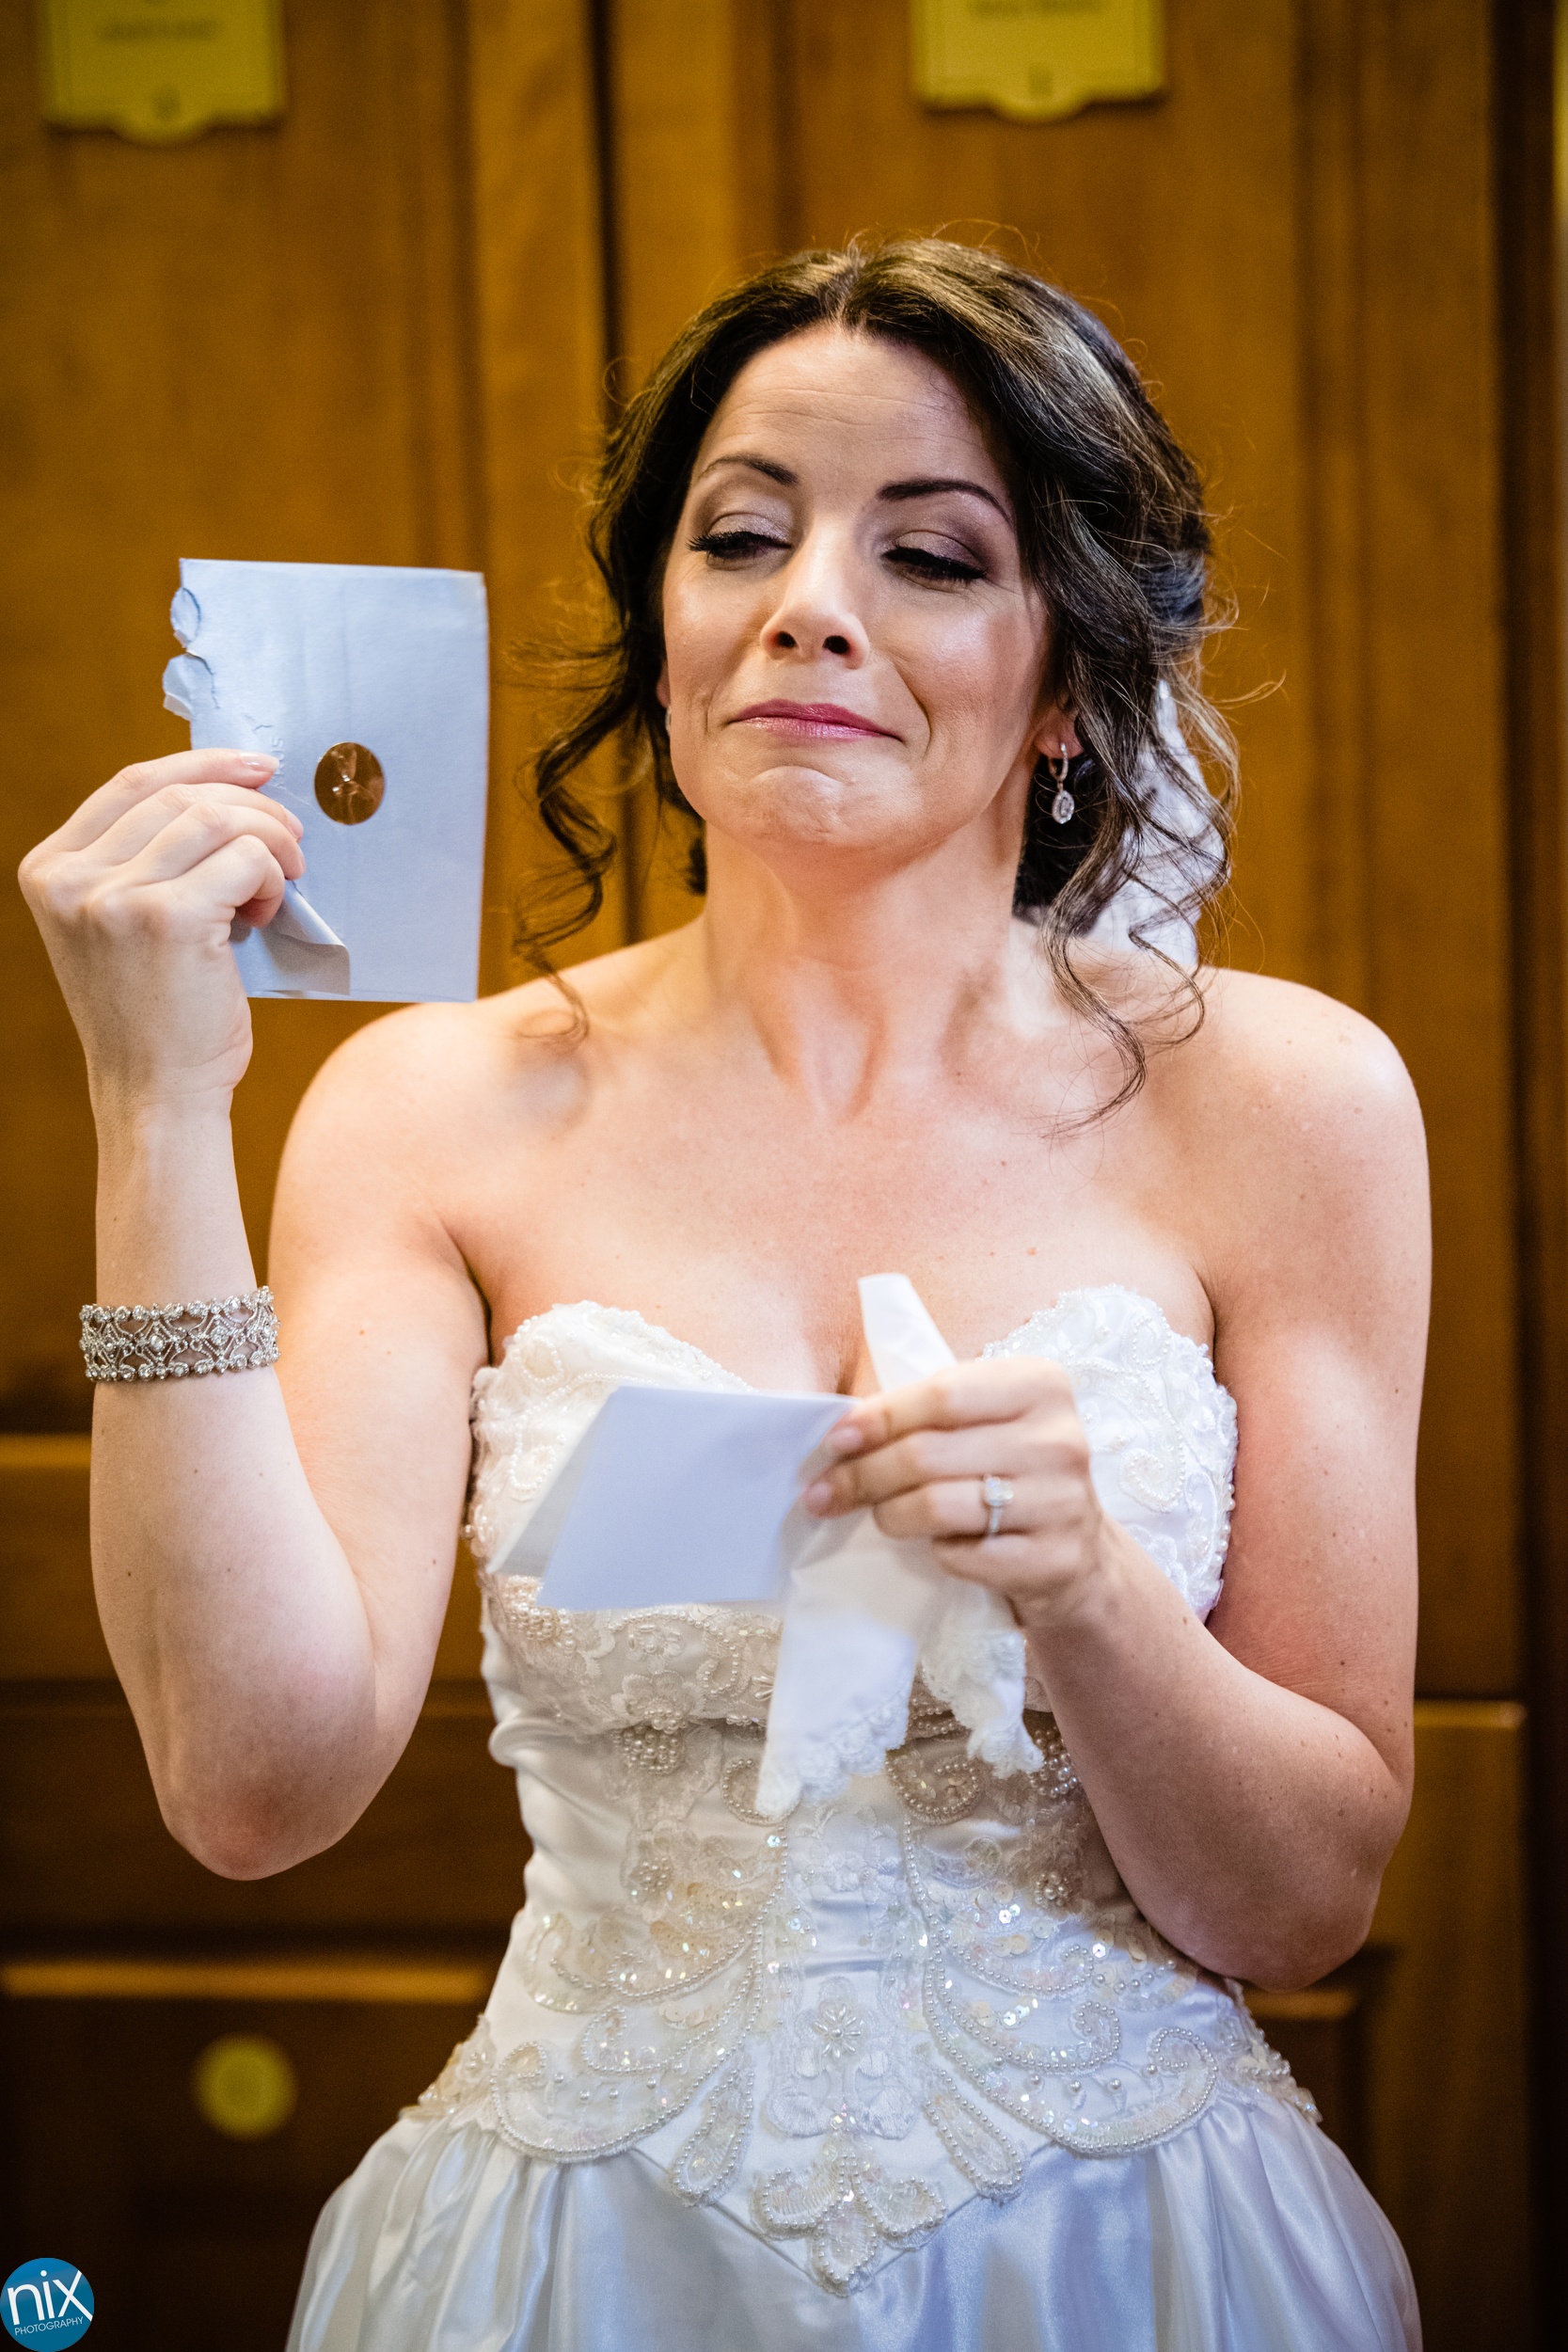 bride cries while readding letter from her future husband